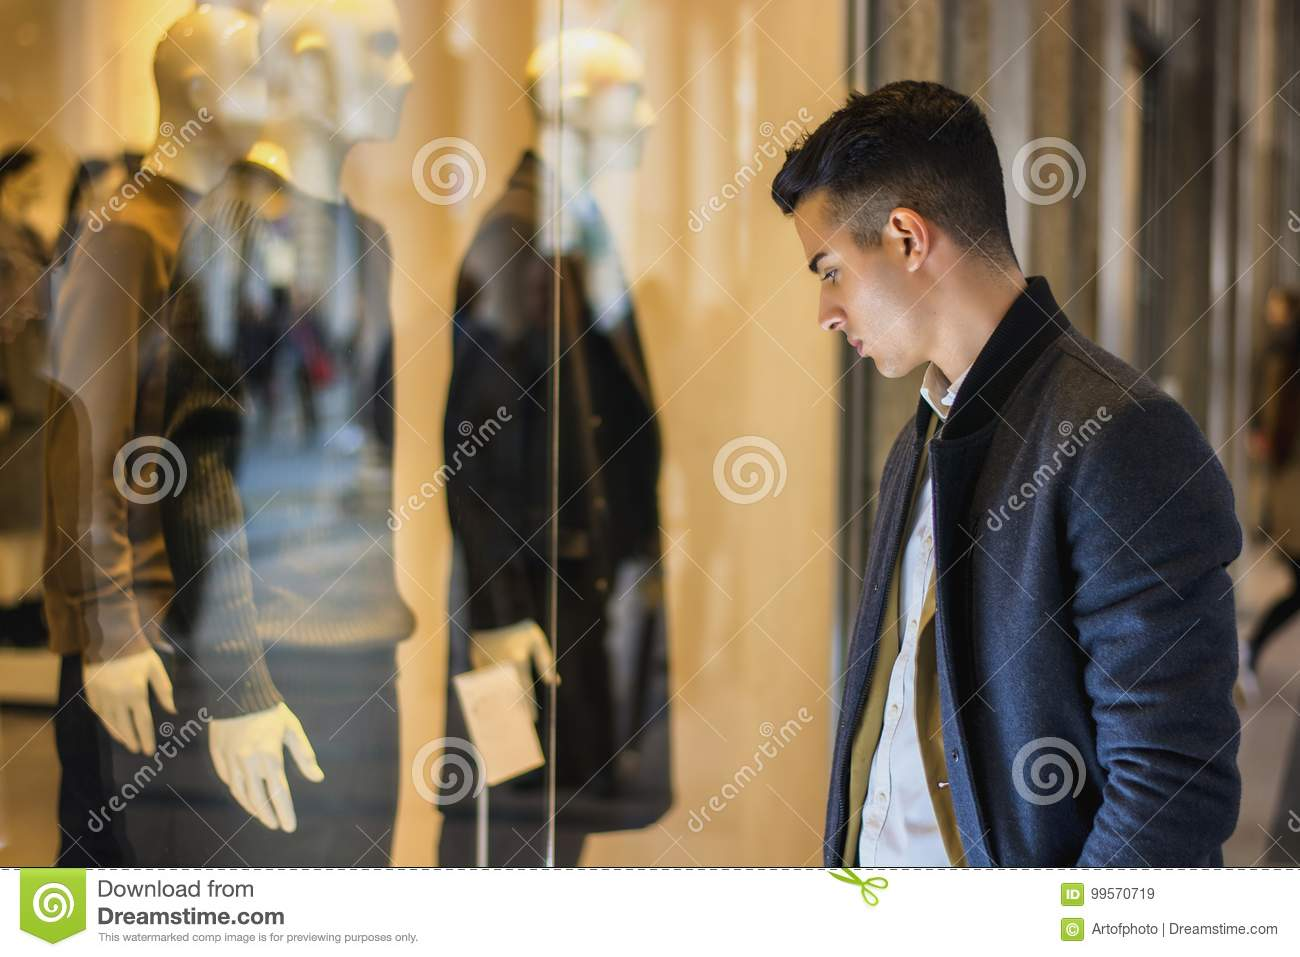 d5aa718a9 Handsome Young Man in Black Elegant Suit Looking at Displayed Fashion Items  in Glass Window Boutique at the High Street Side.